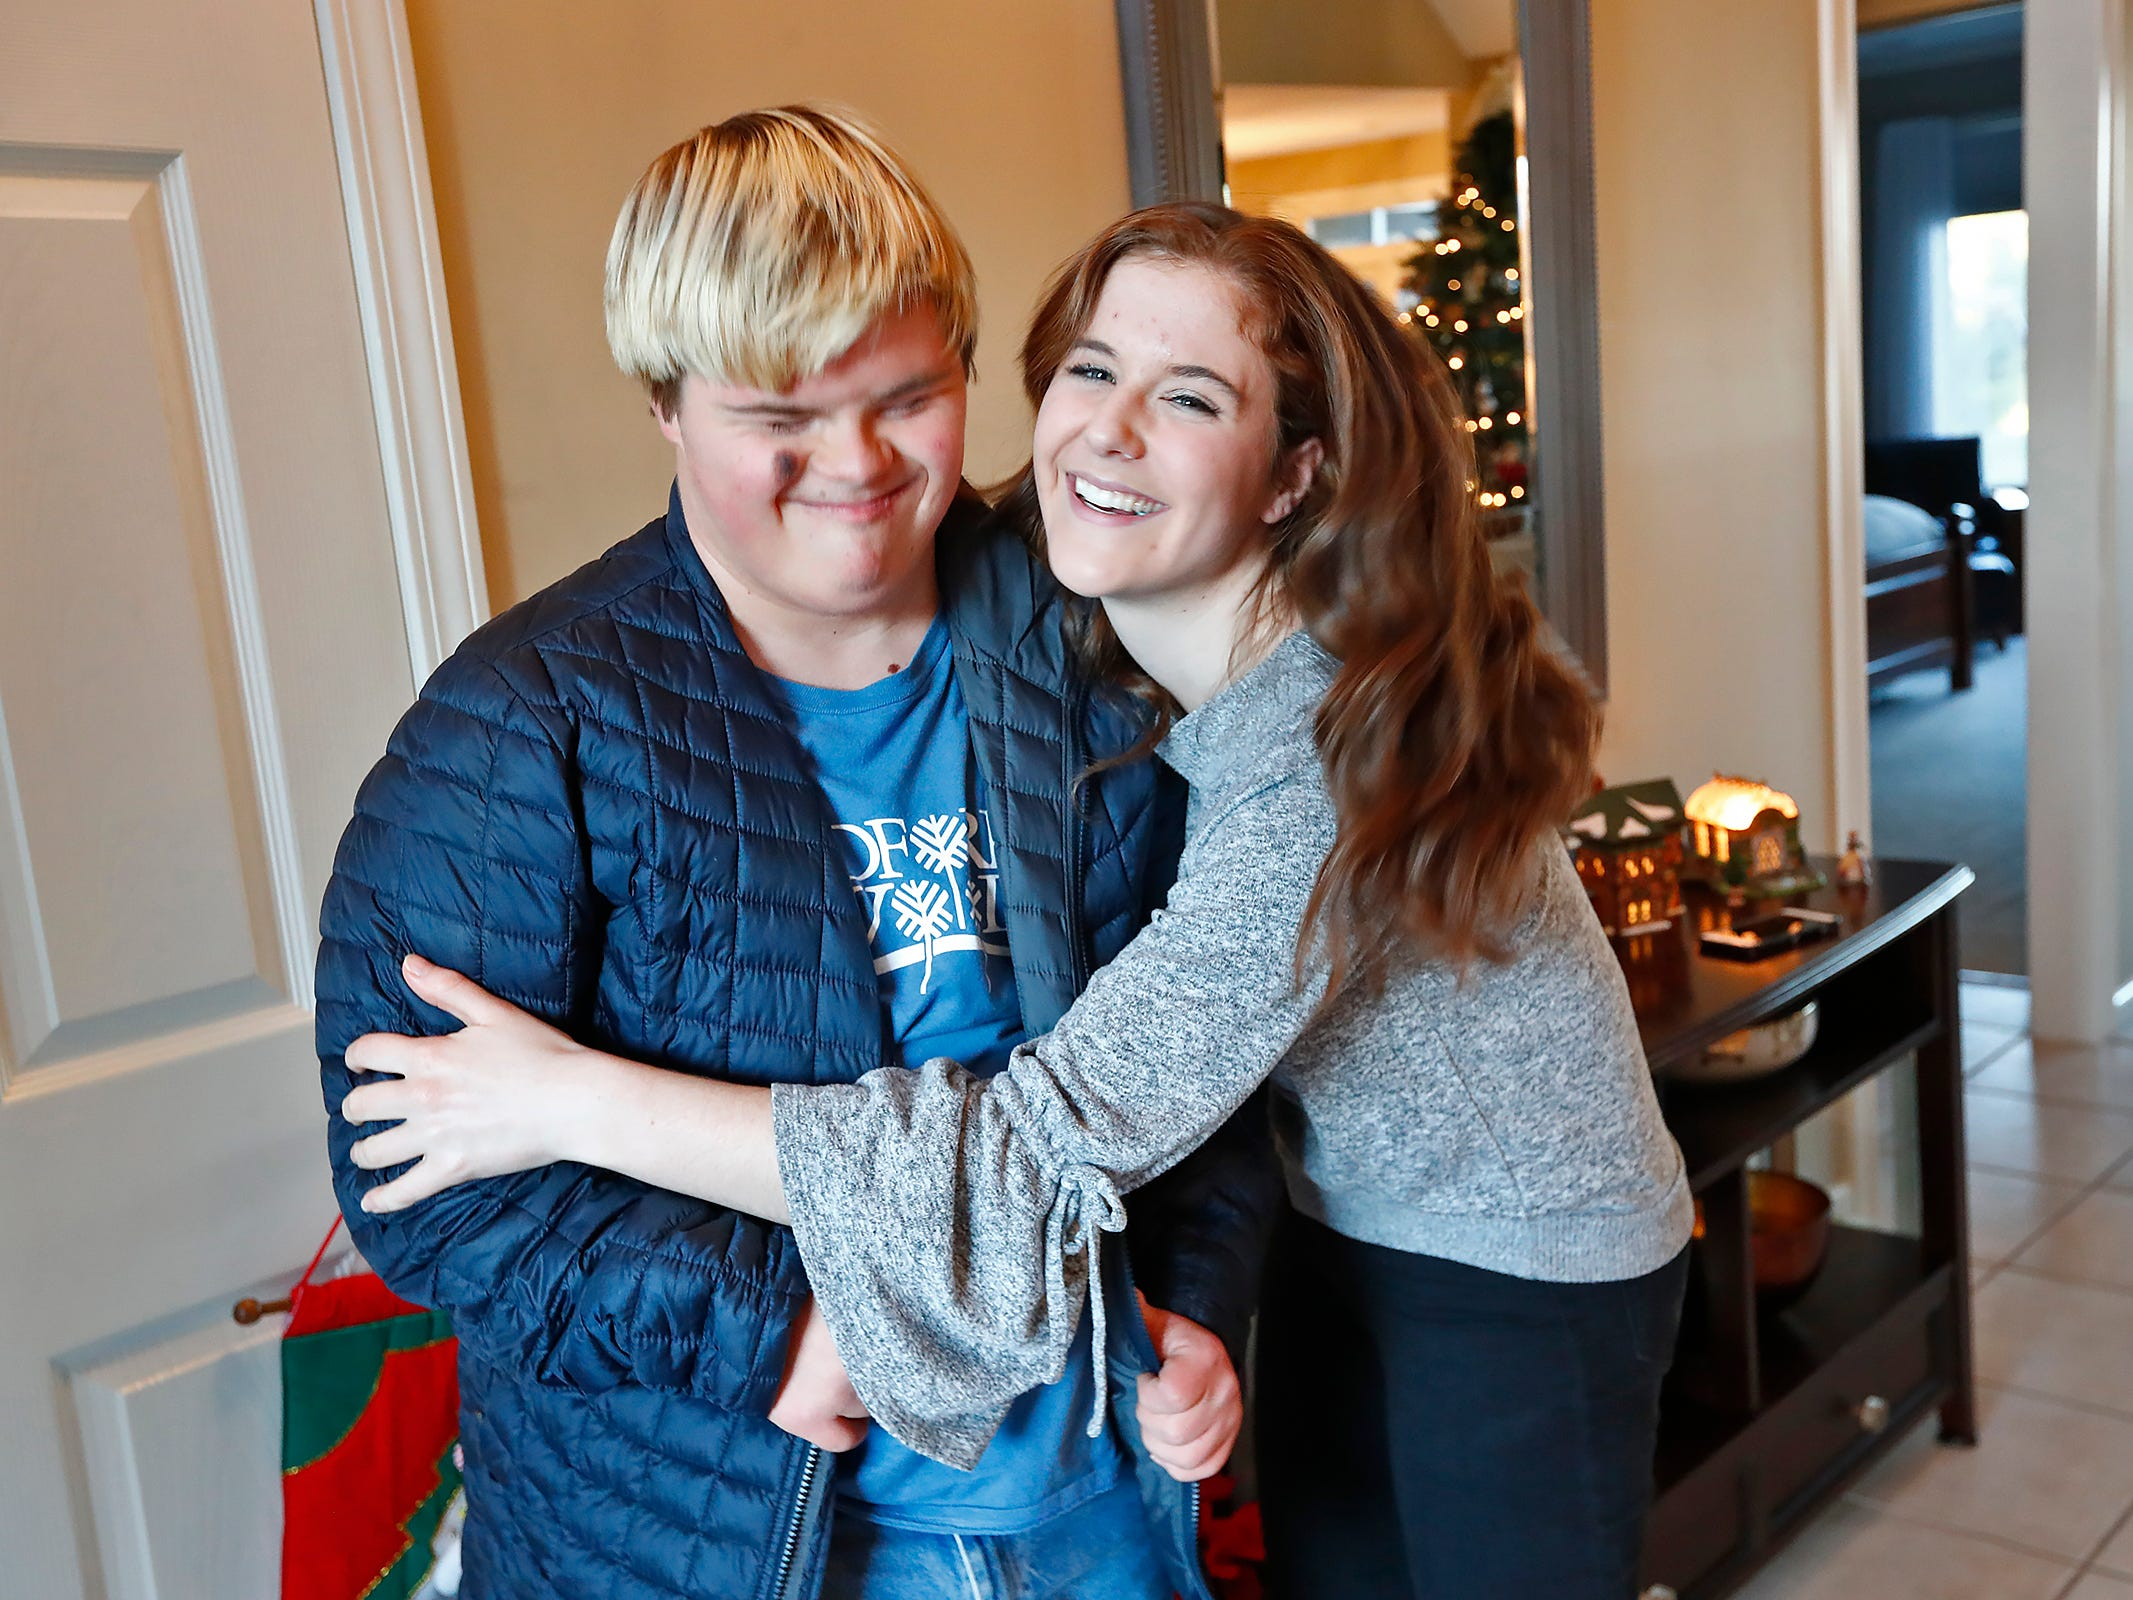 Molly Shaffer, right, says goodbye to Sky Simpson after hanging out at Molly's home, Wednesday, Dec. 12, 2018. The two have been best friends since fourth grade.